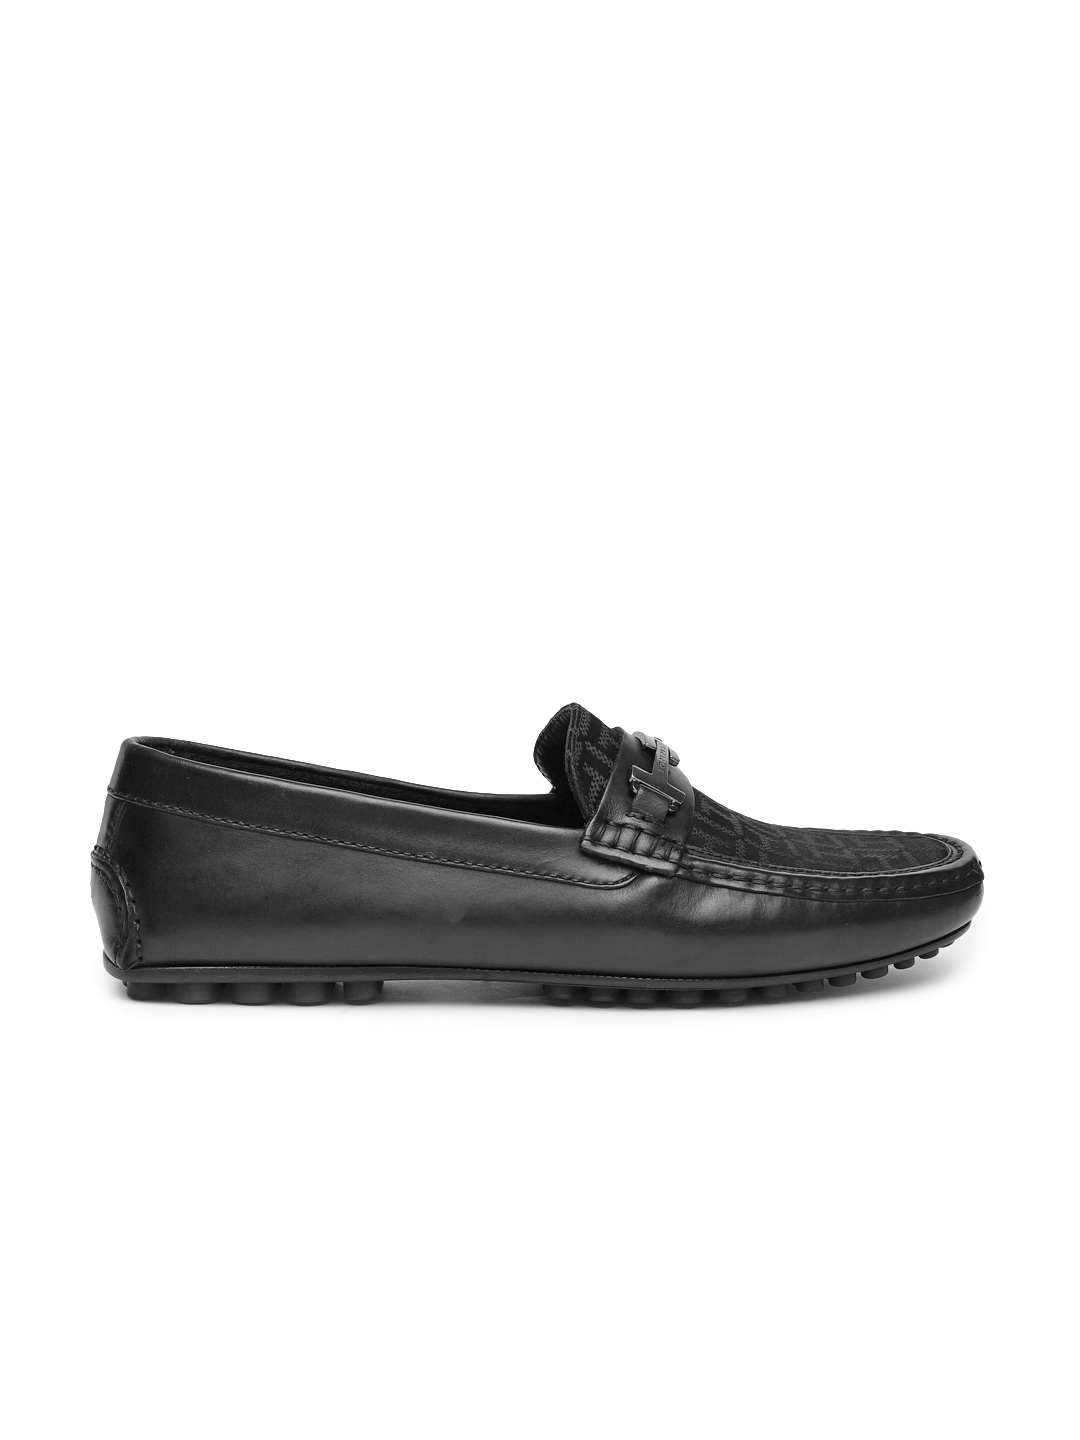 a4618841bce6 Buy Tommy Hilfiger Men Black Leather Loafers - Casual Shoes for Men ...